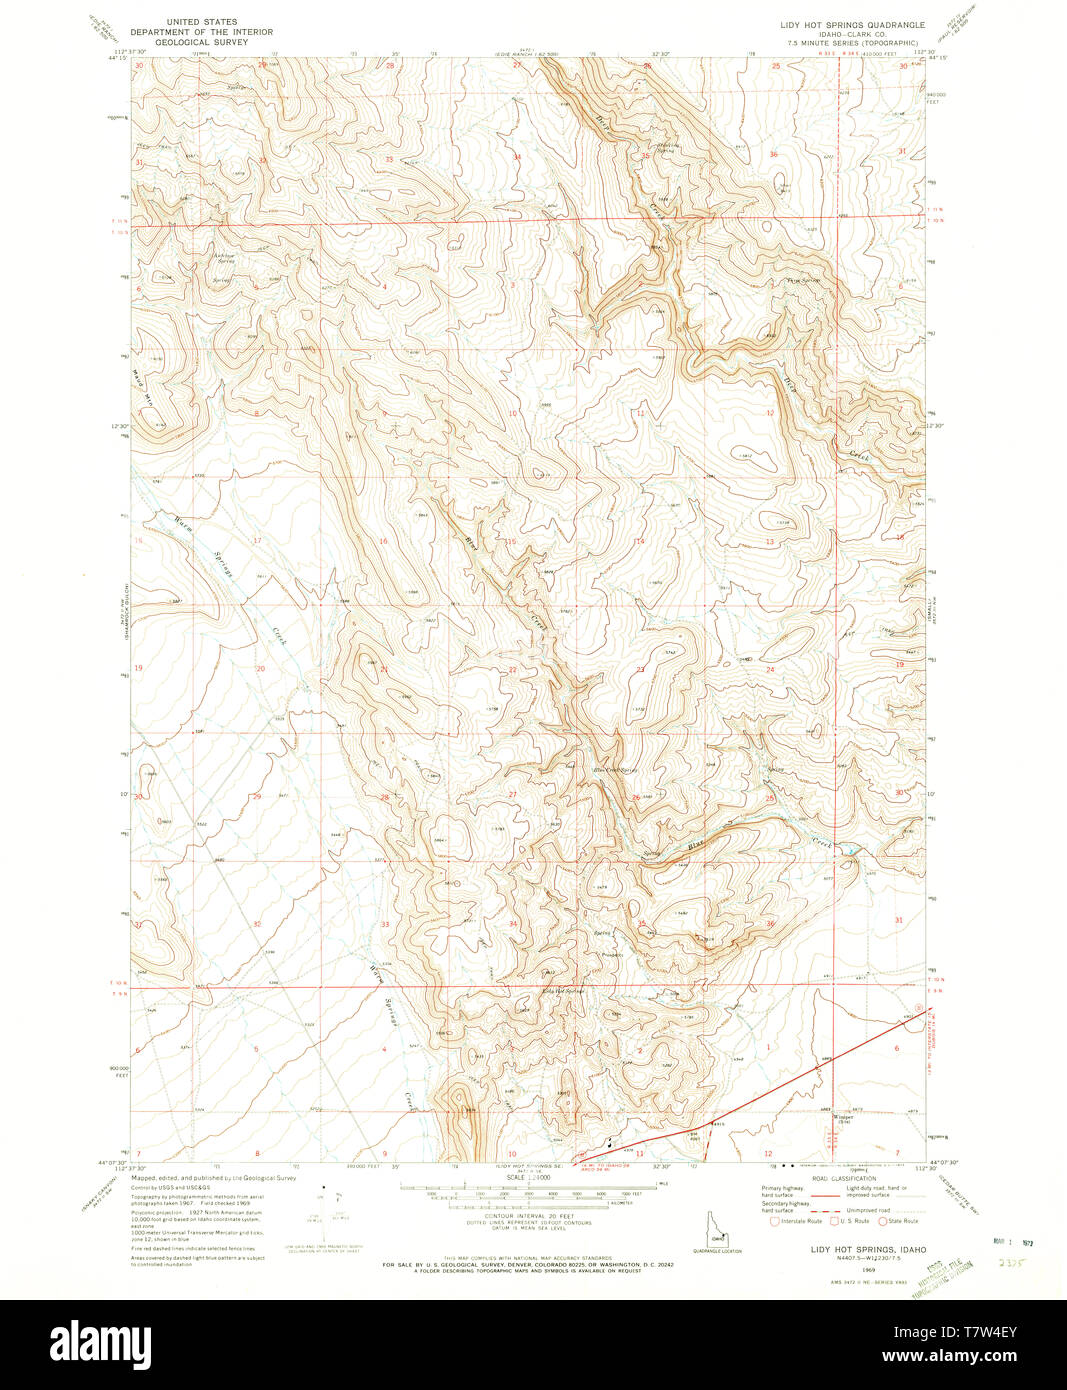 USGS TOPO Map Idaho ID Lidy Hot Springs 236881 1969 24000 ... Idaho Hot Springs Map on hot springs wa, hot springs in alaska, hot springs near boise idaho, hot springs park, hot springs asheville nc, hot springs southern california, hot springs lowman idaho, hot springs northern idaho, hot springs canada, hot springs in tennessee, hot springs mccall idaho, hot springs tower, hot springs in wyoming, hot springs buhl idaho, hot springs near atlanta, hot springs west virginia,